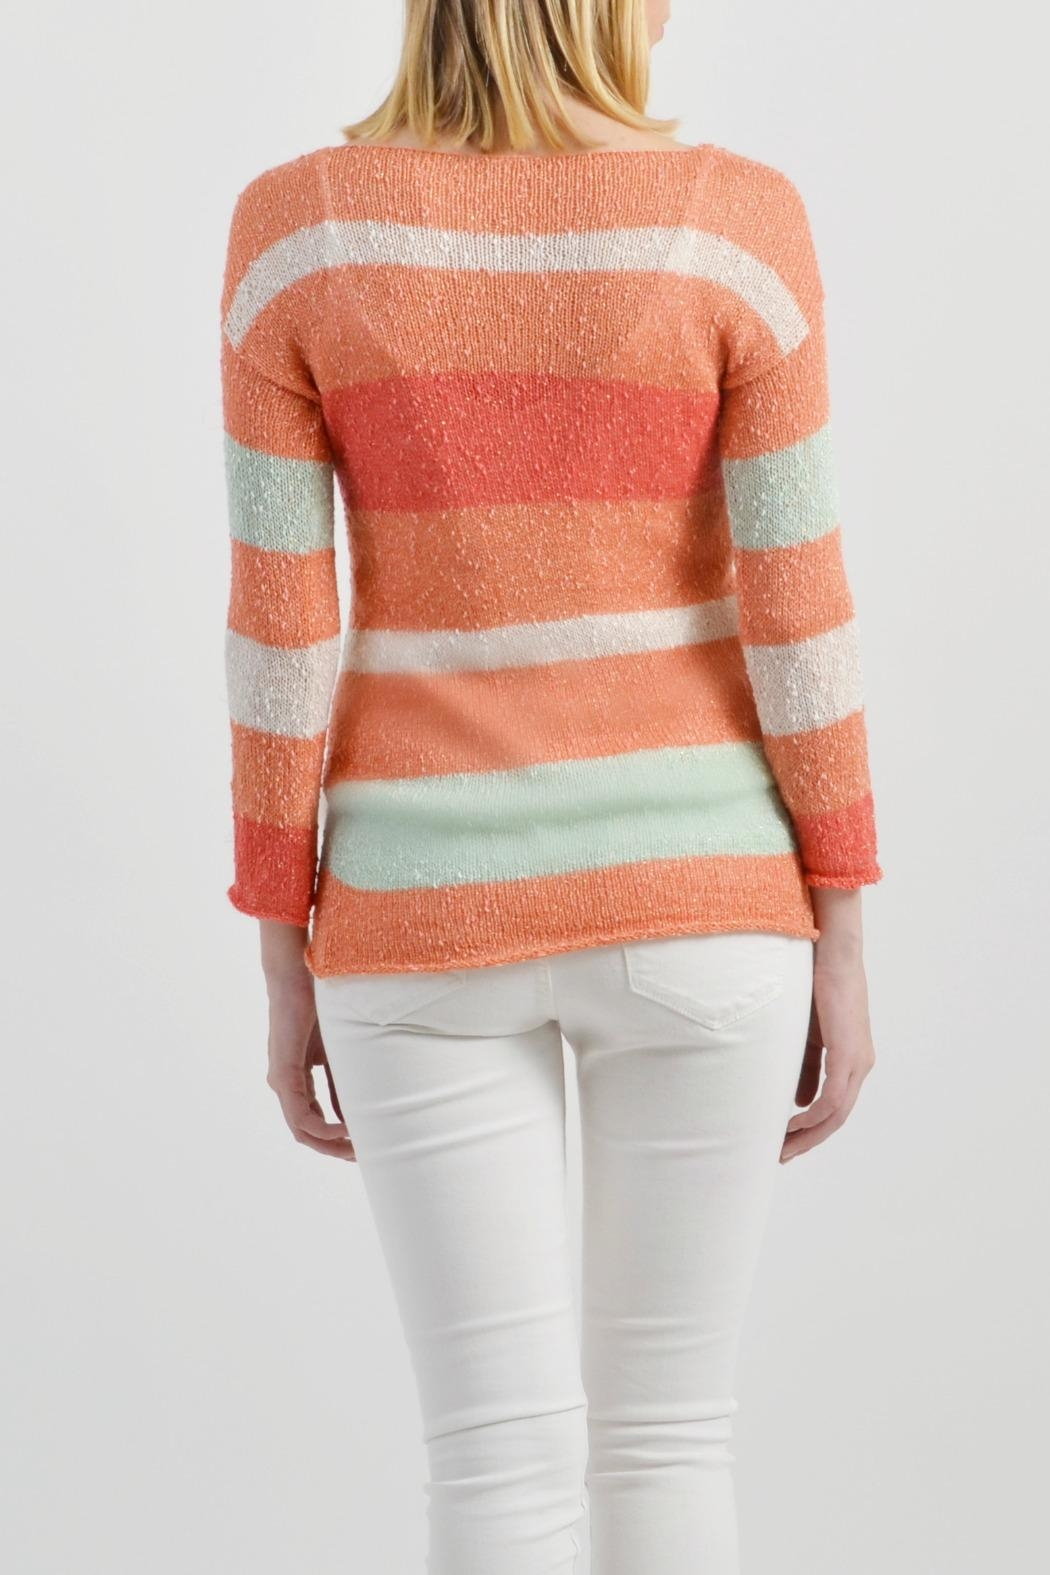 De Mil Amores Buenos Aires Soleil Sweater - Front Full Image